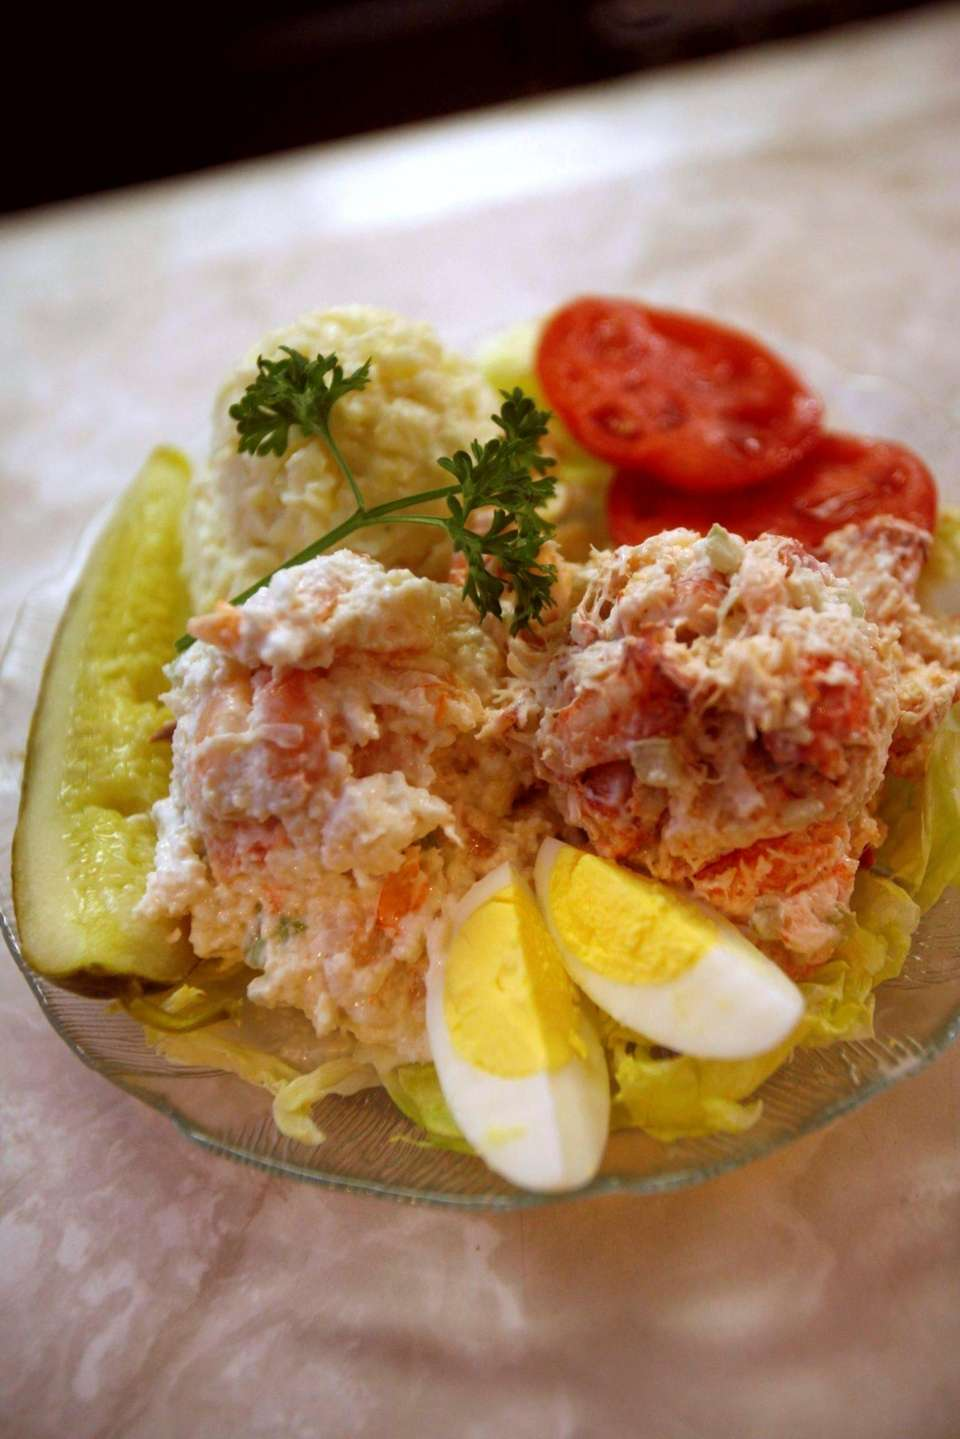 The lobster salad, right, and shrimp salad, left,